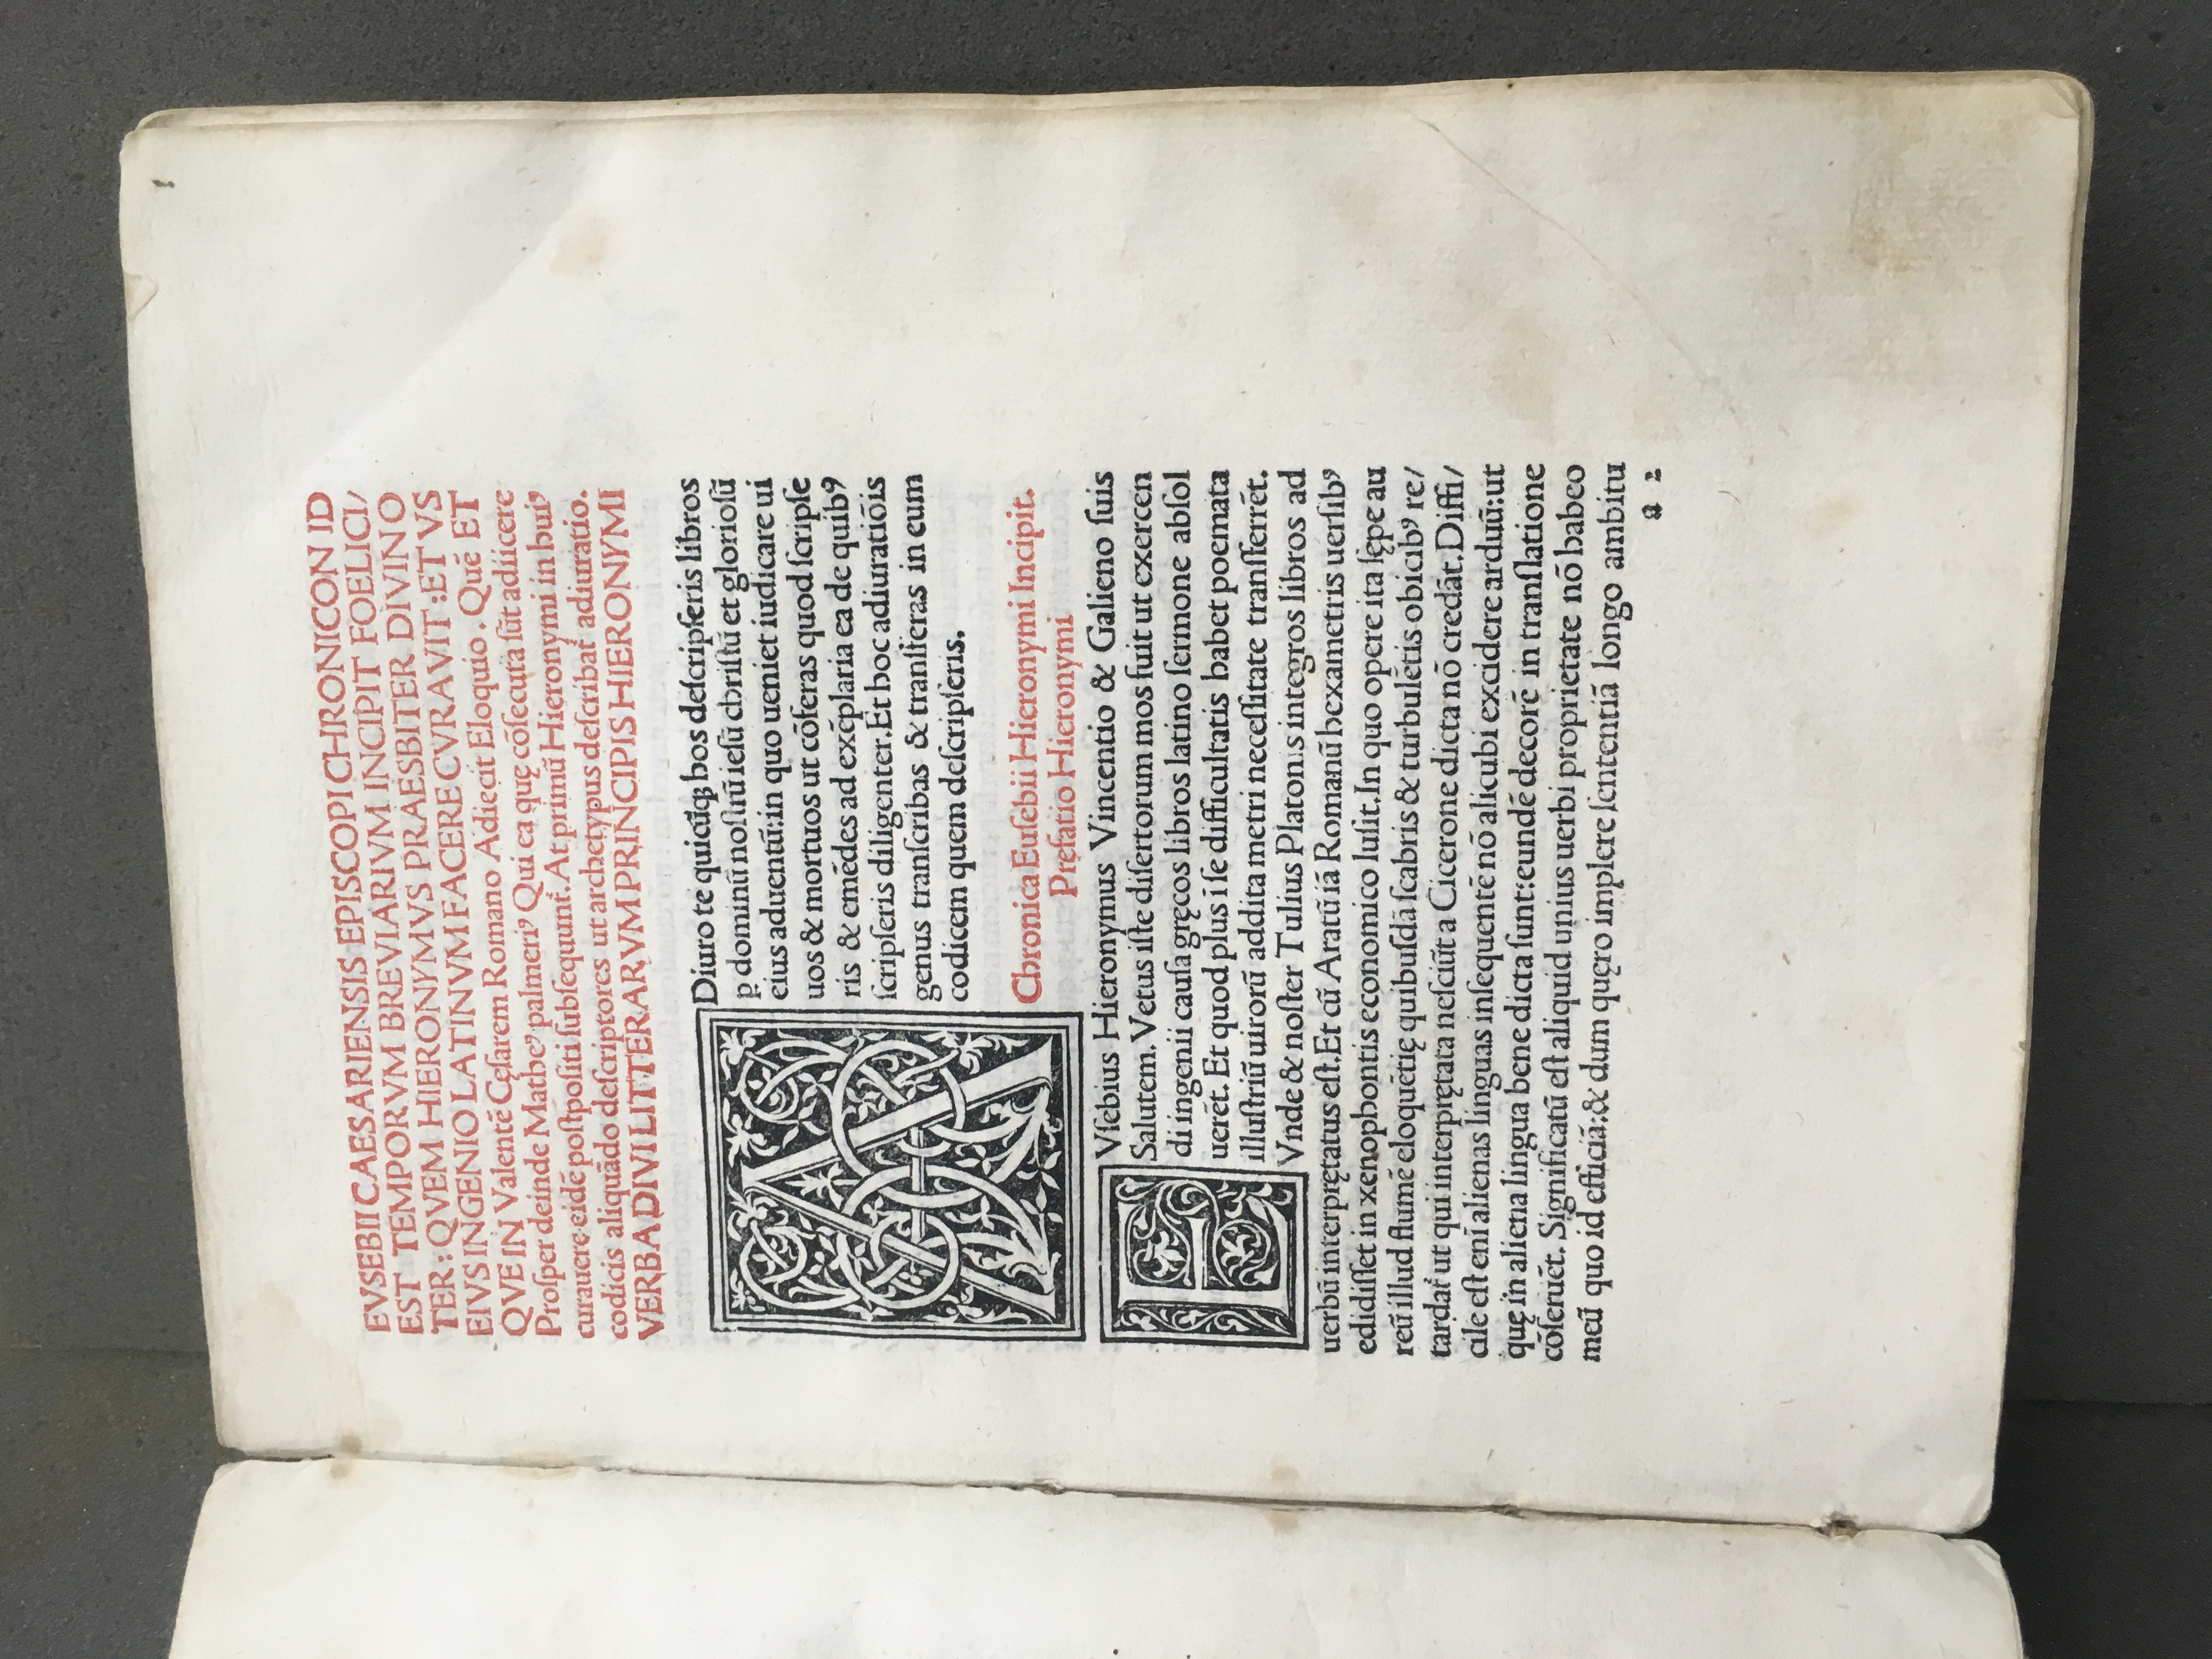 Opening page of the Chronicon showing elaborate initial letters A and E and black and red text.